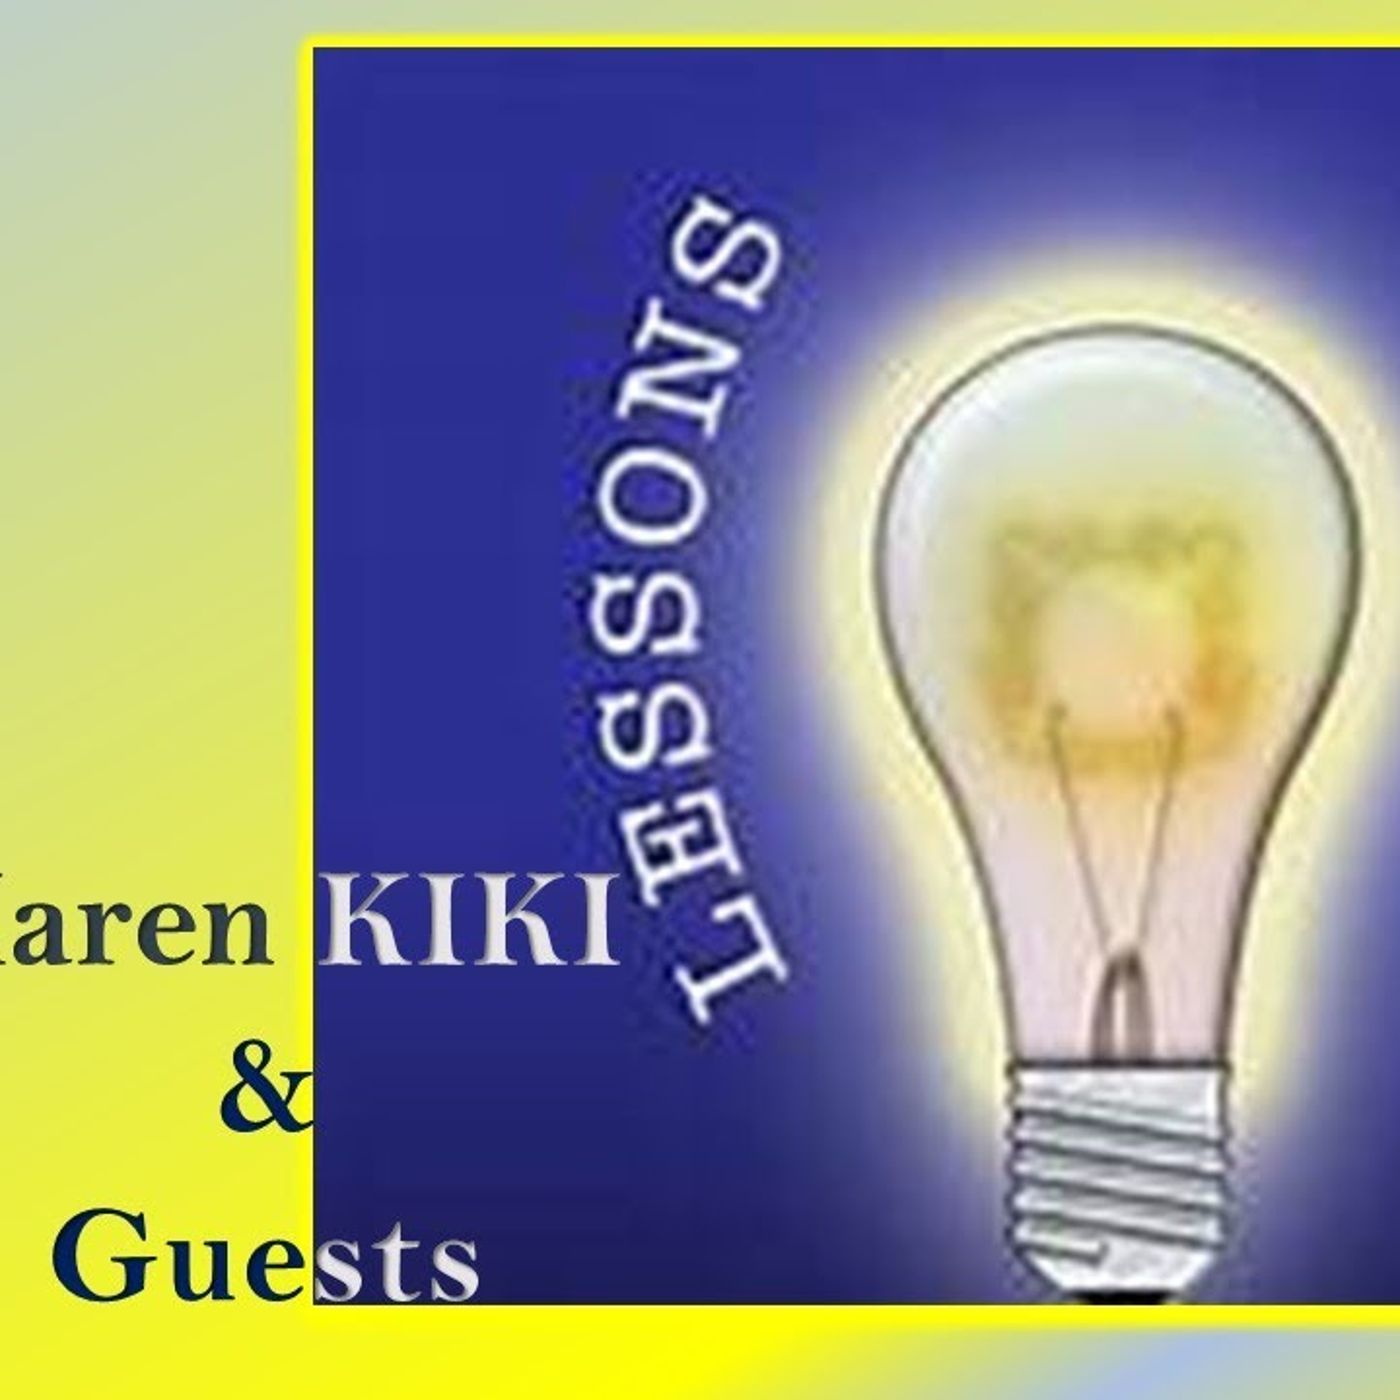 A SPECIAL Lessons_learned_with_kiki_guest_gary_moss_11_29_20